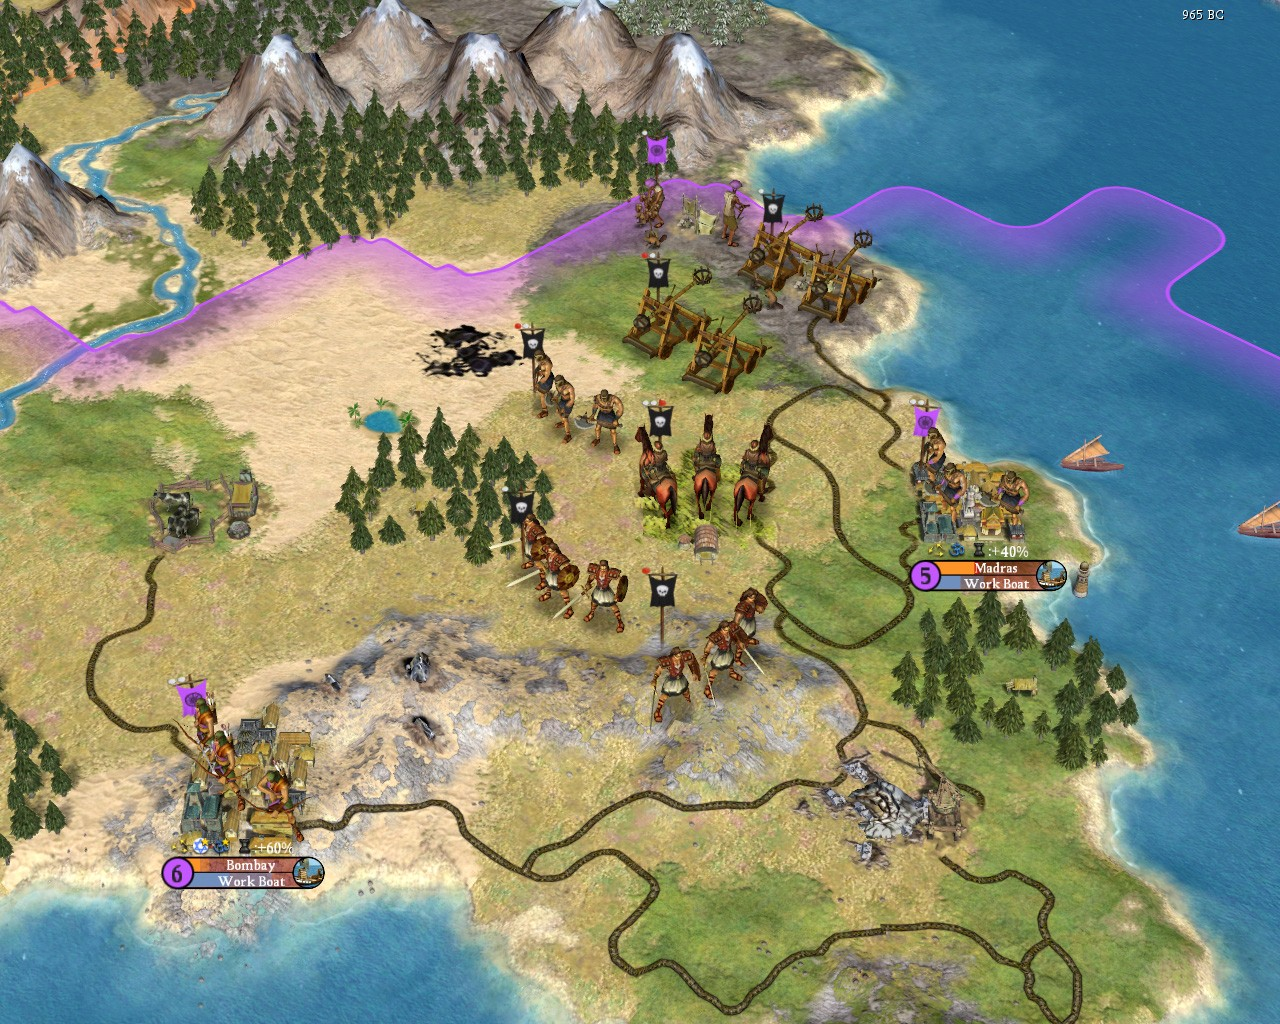 Civilization IV: Warlords - foltocska